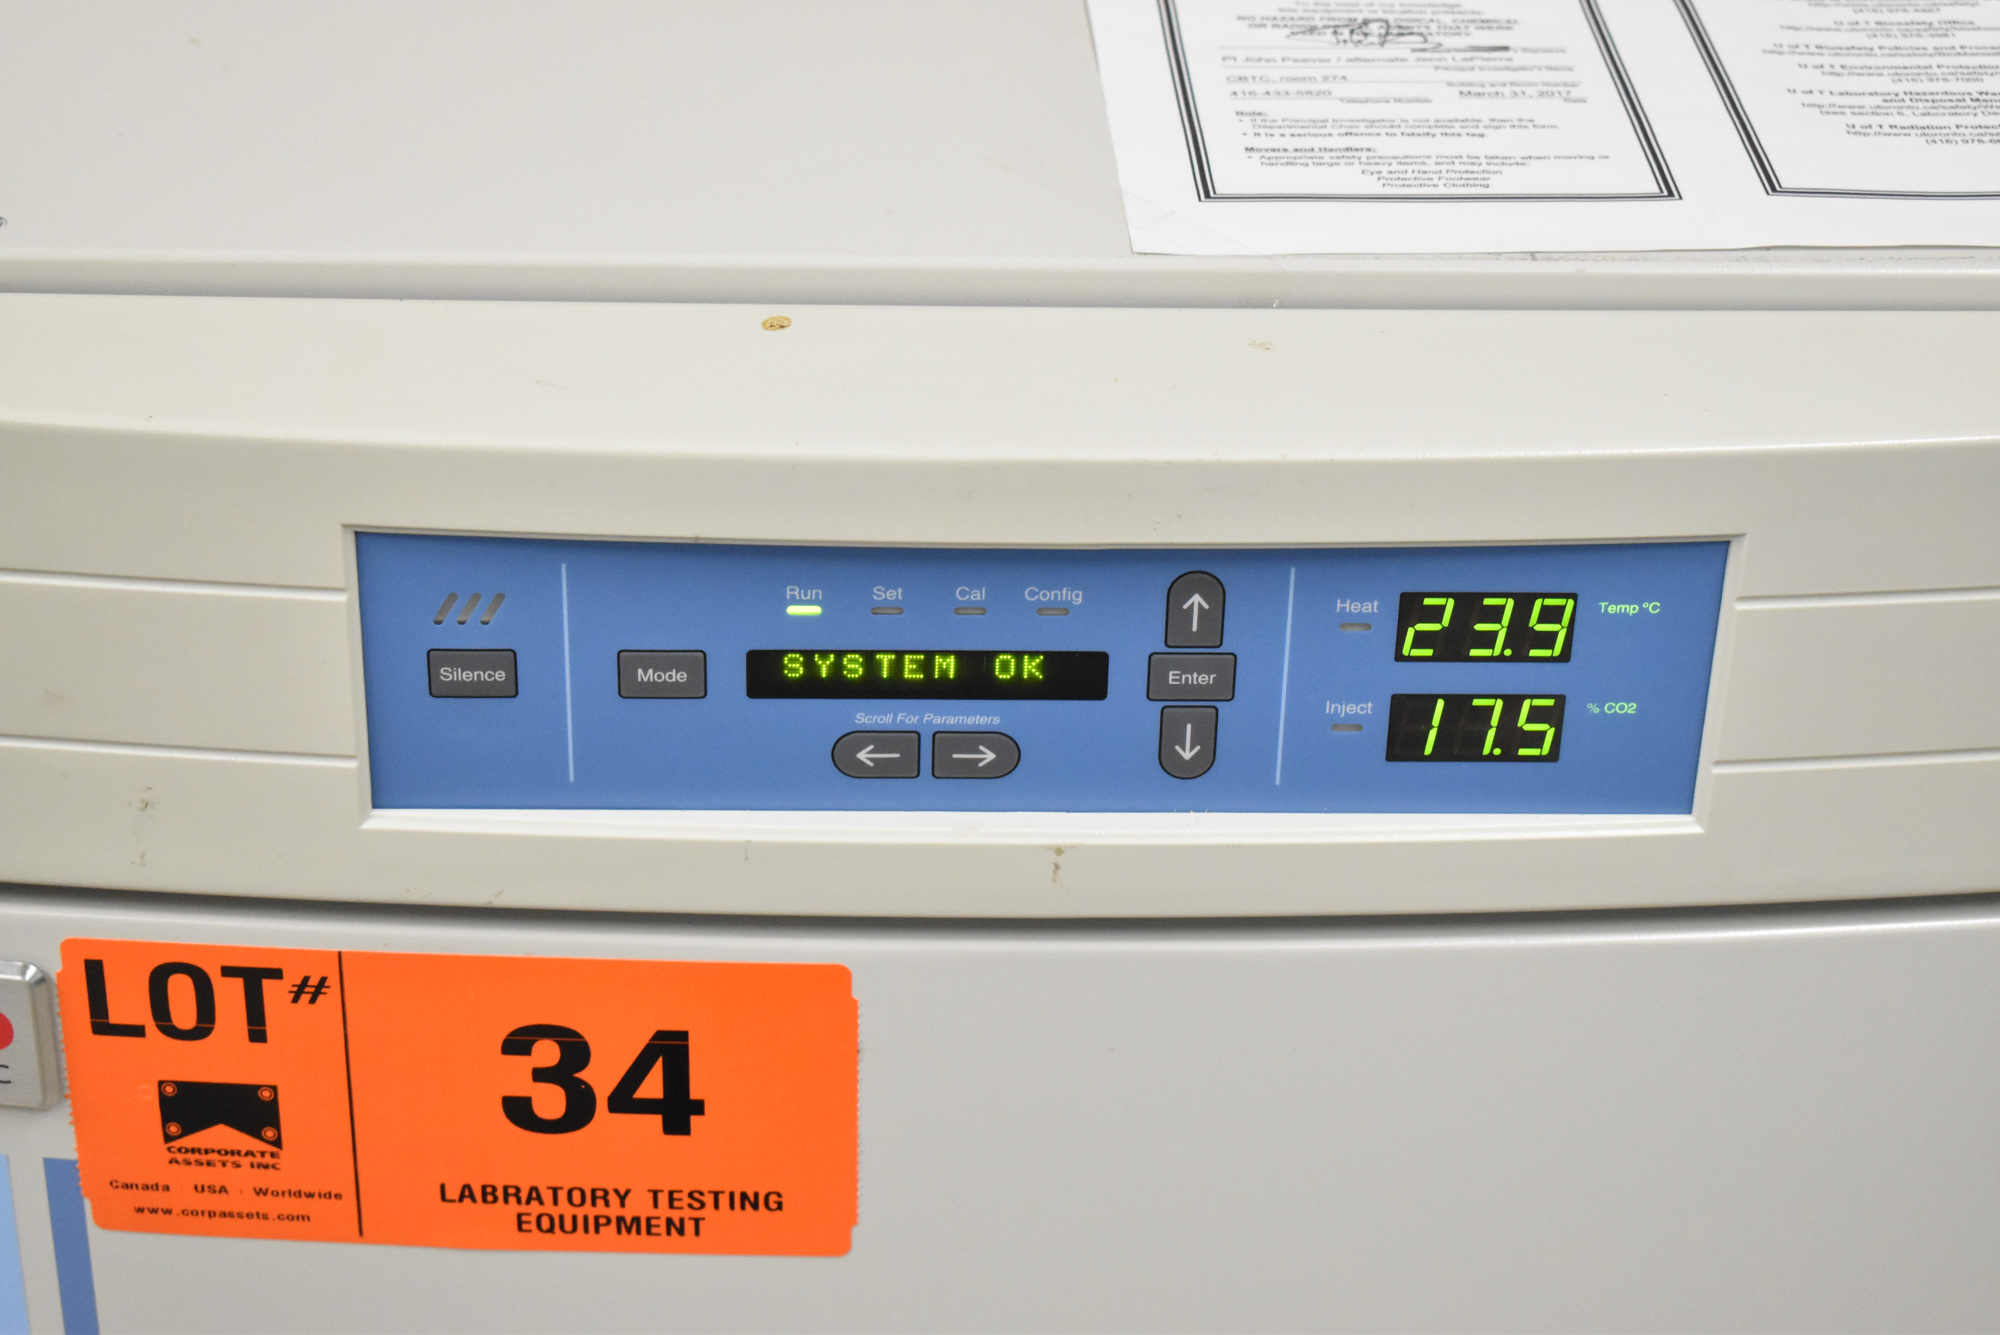 THERMO SCIENTIFIC 3130 FORMA SERIES II WATER JACKET CO2 INCUBATOR WITH DIGITAL MICROPROCESSOR - Image 4 of 8